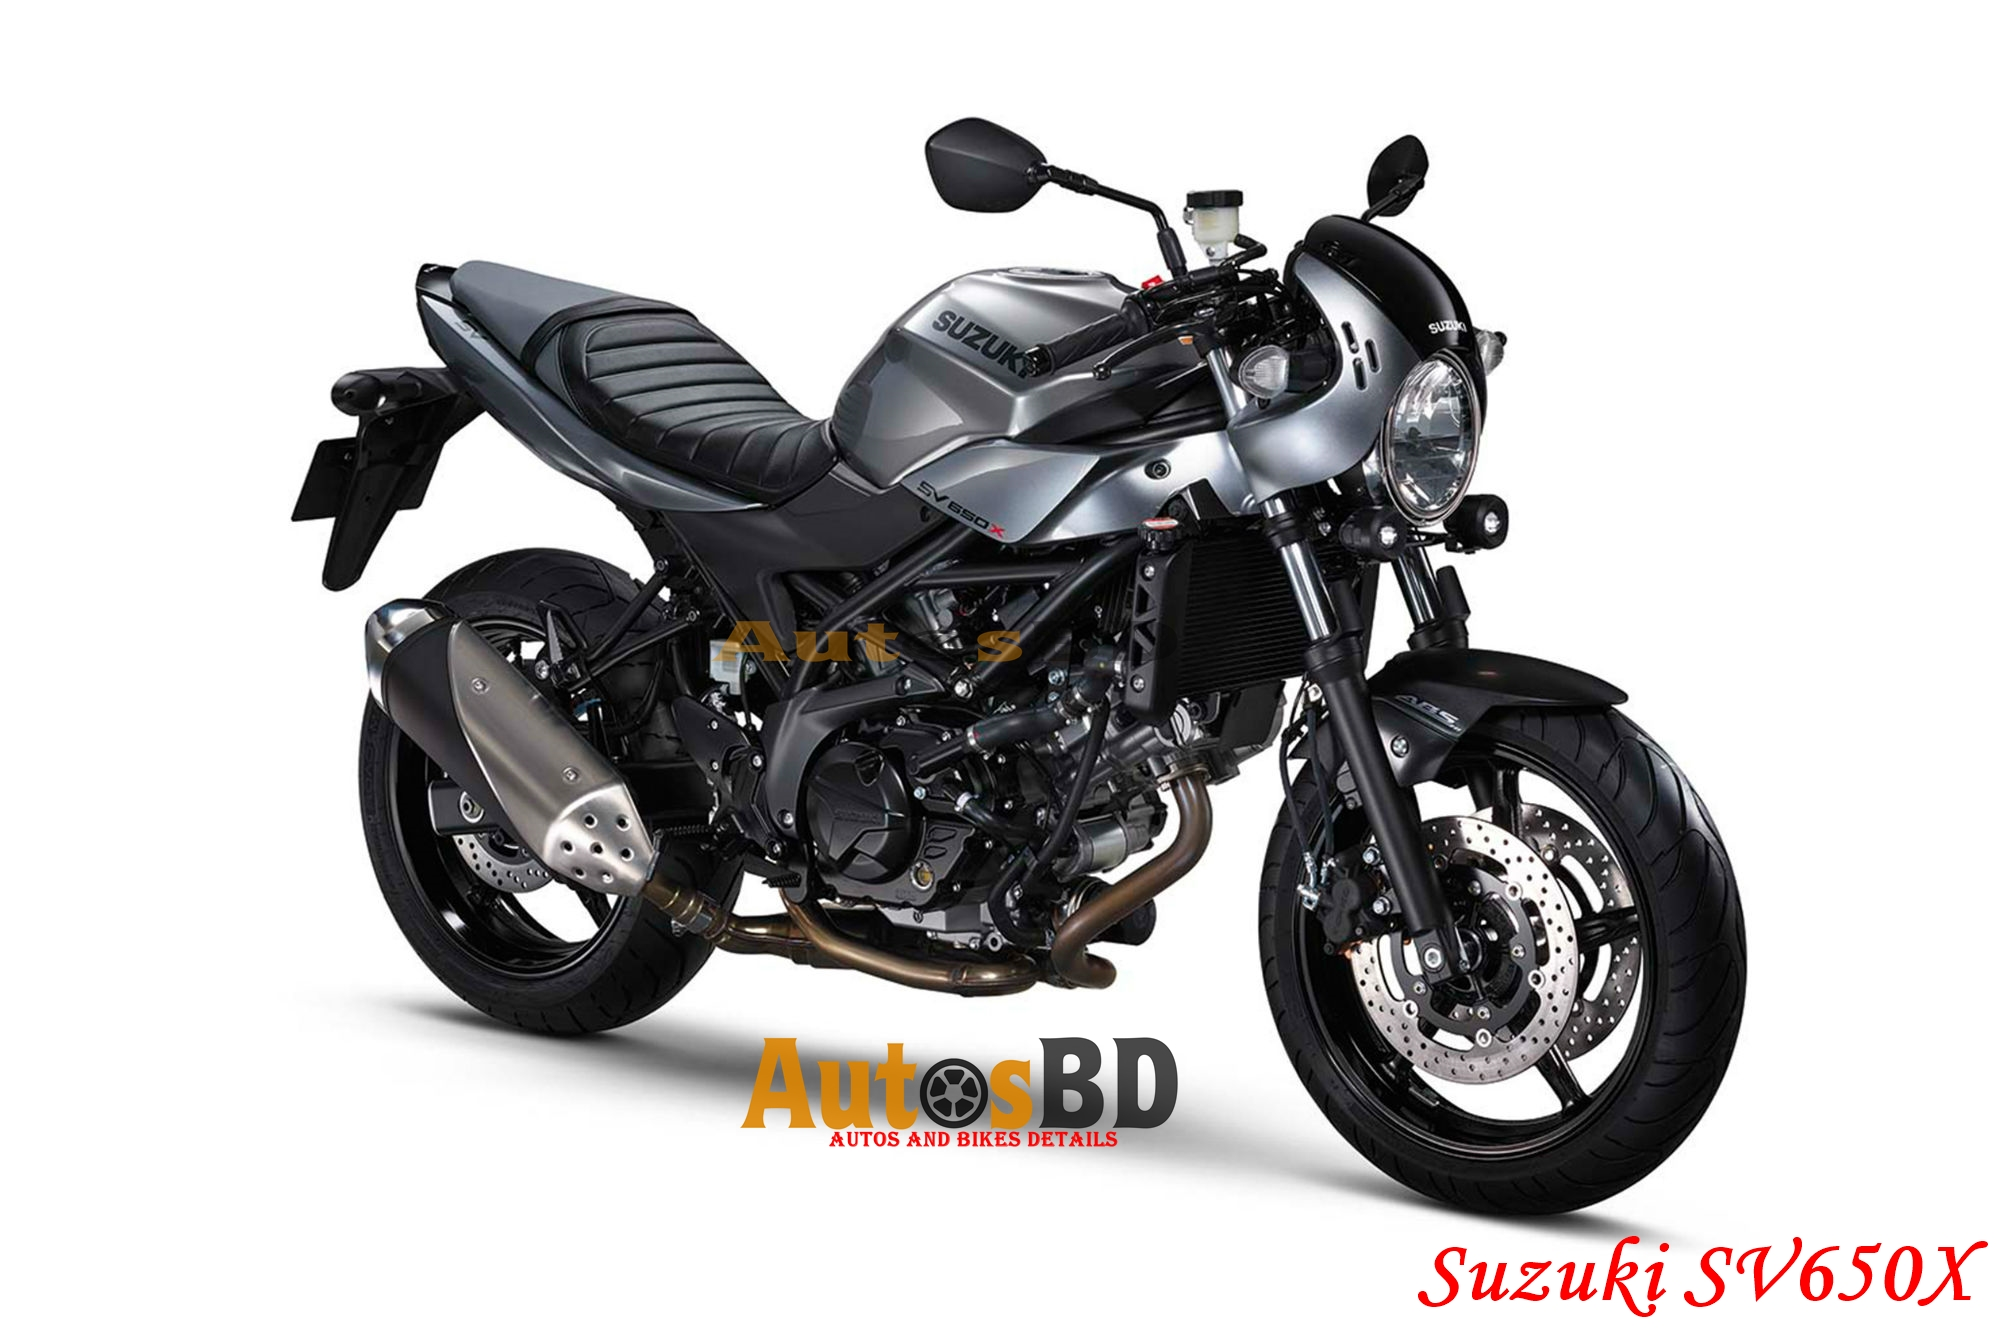 Suzuki SV650X Motorcycle Price in India